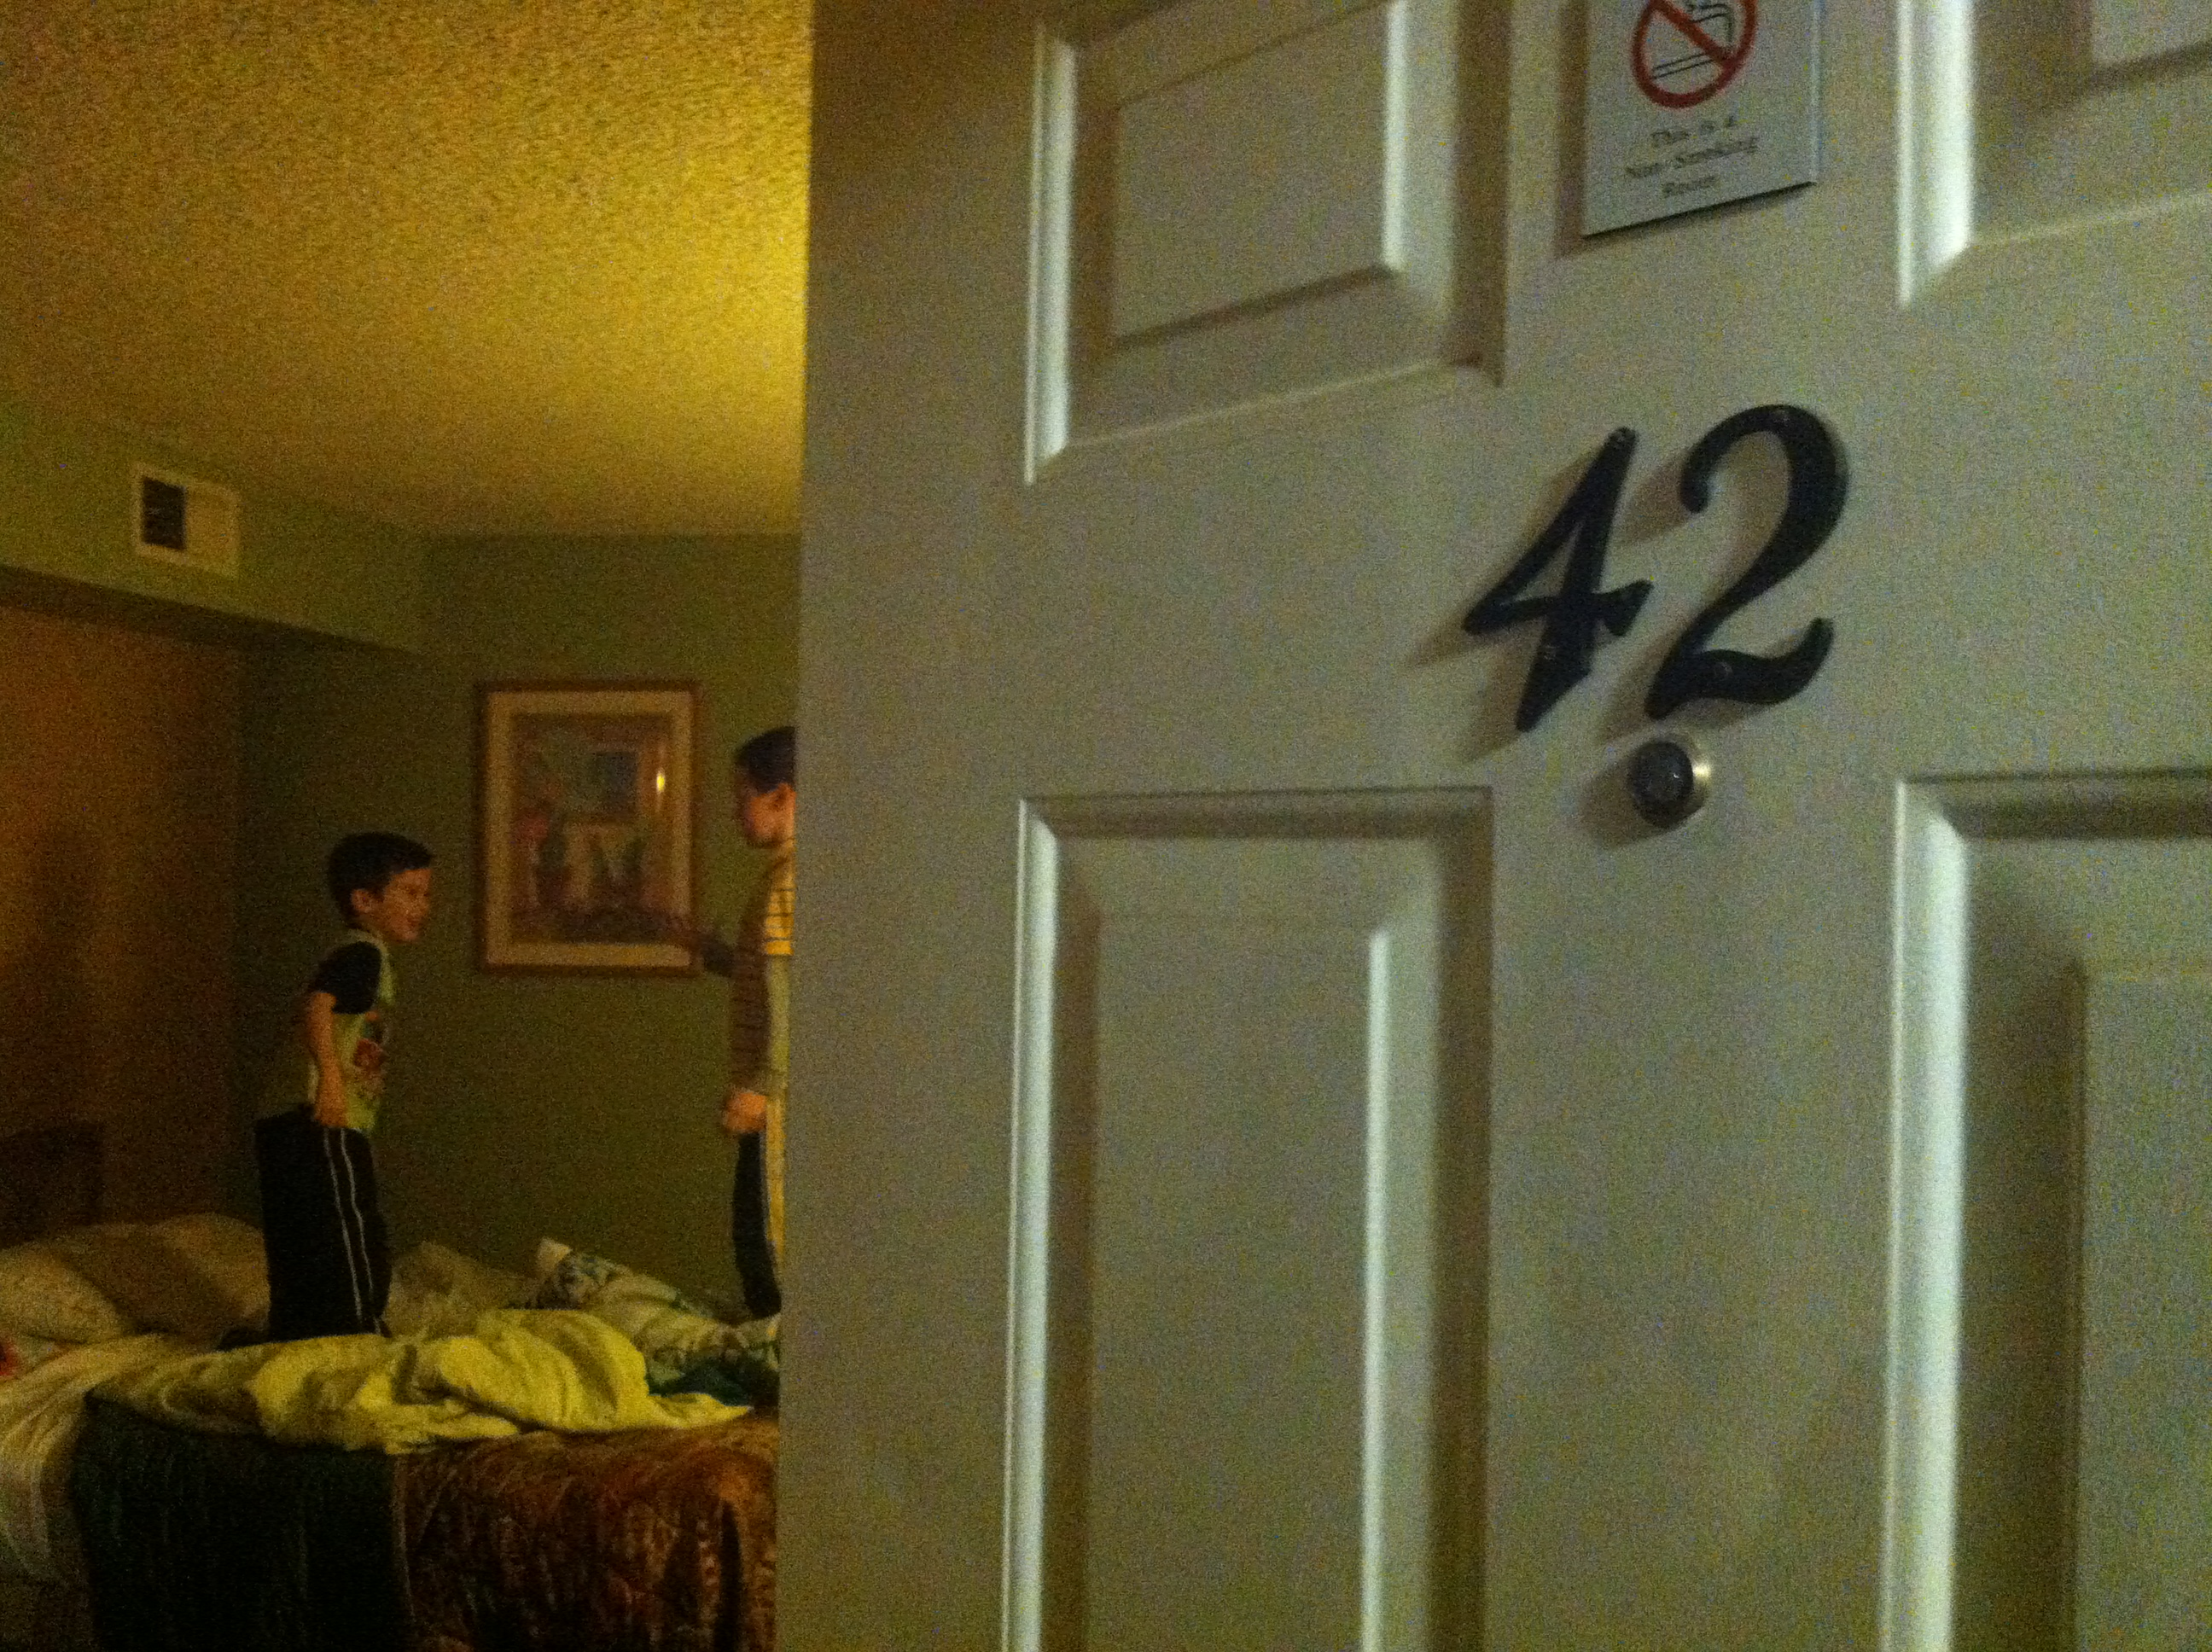 Our hotel room in Prescott.